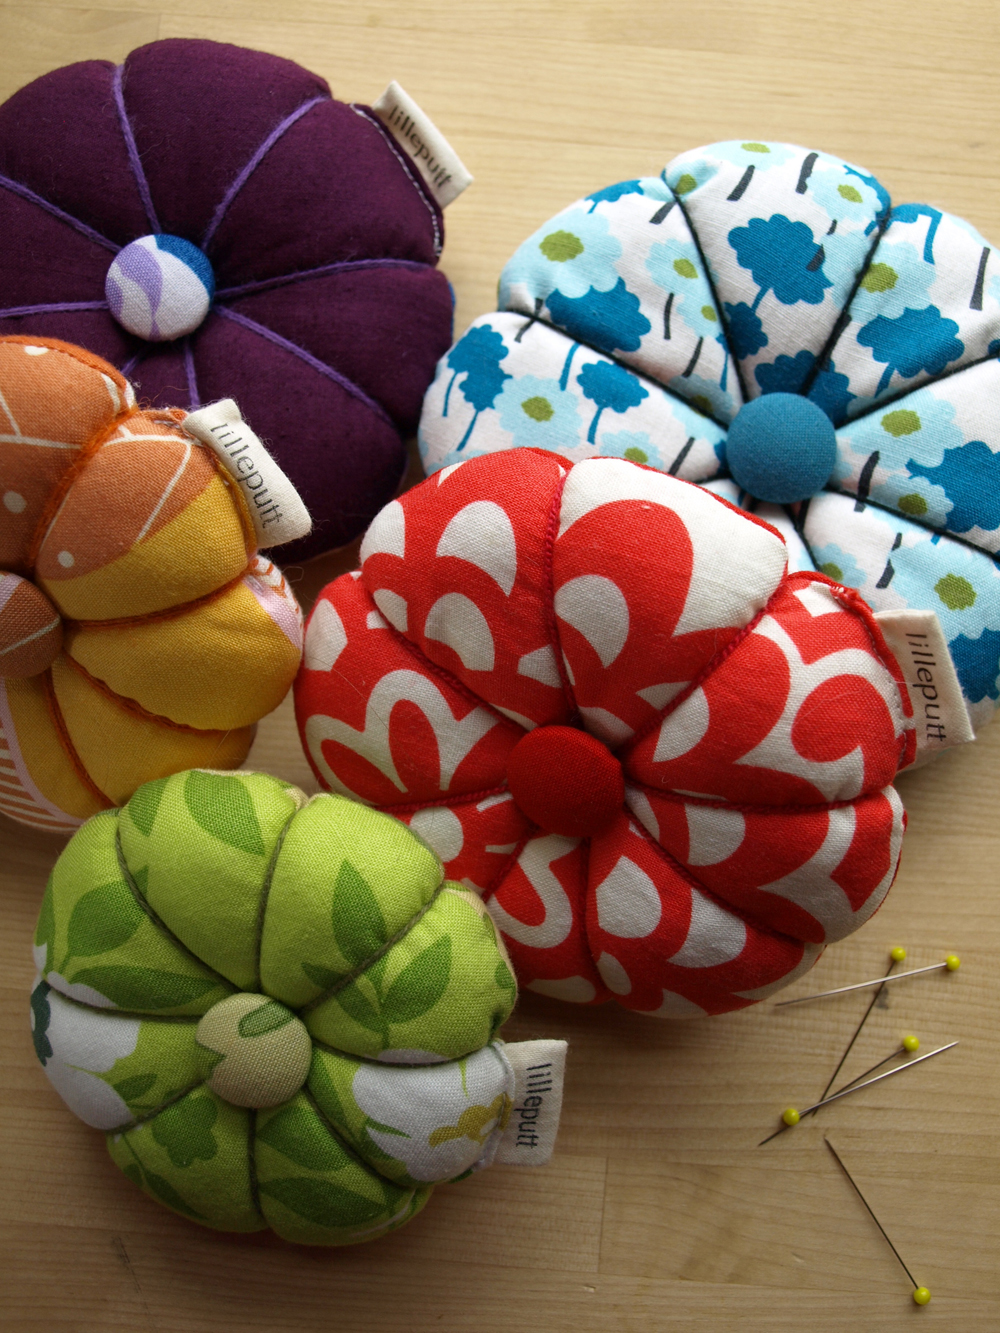 Replenishing the pincushions in the shop! Find these (and more!) here.